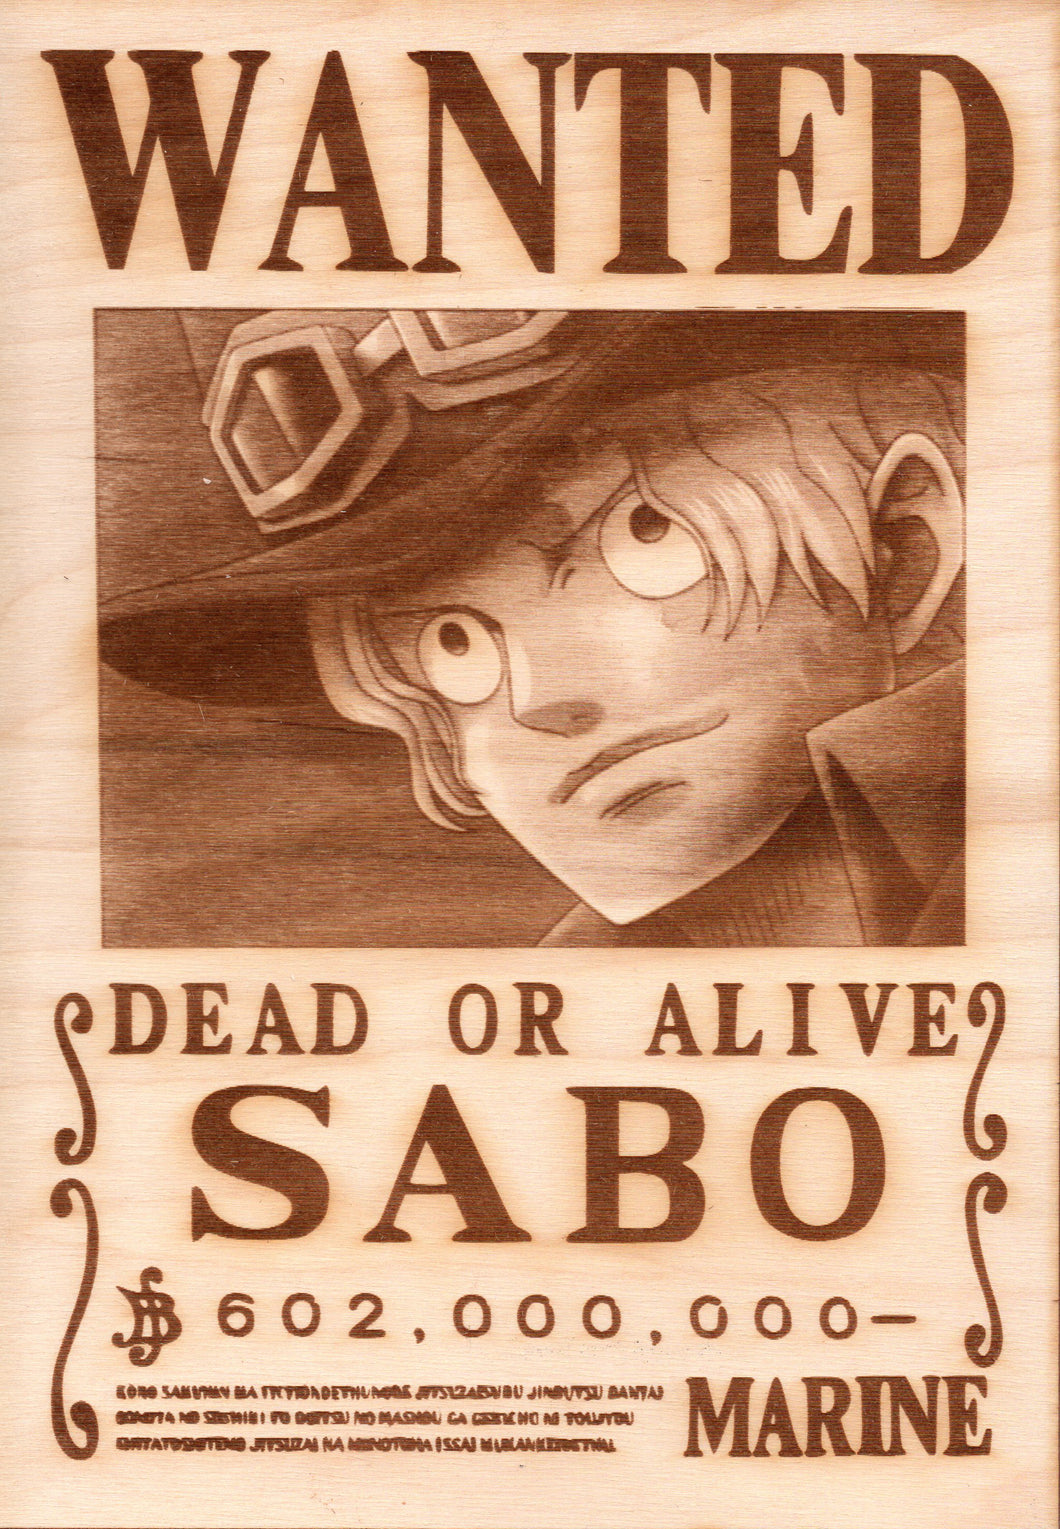 One Piece - Sabo Wooden Wanted Poster - TantrumCollectibles.com